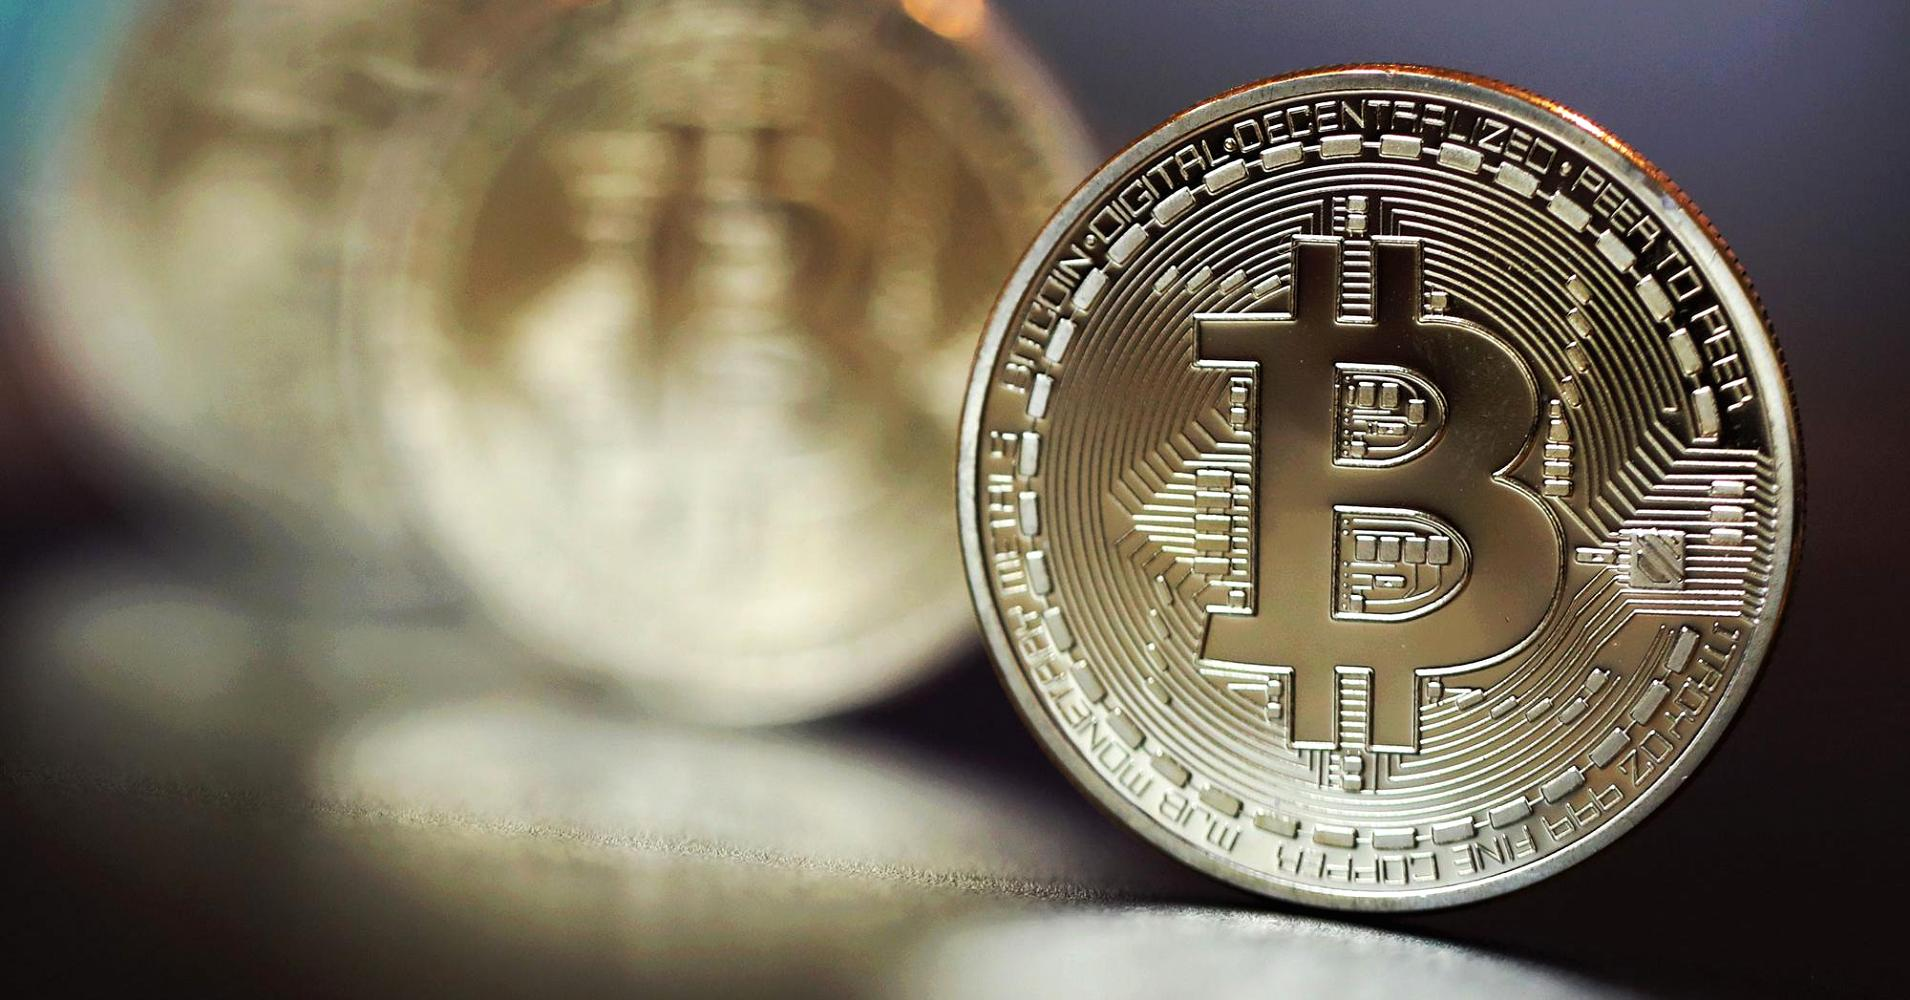 Mine Bitcoin At Home to Get Free Bitcoin